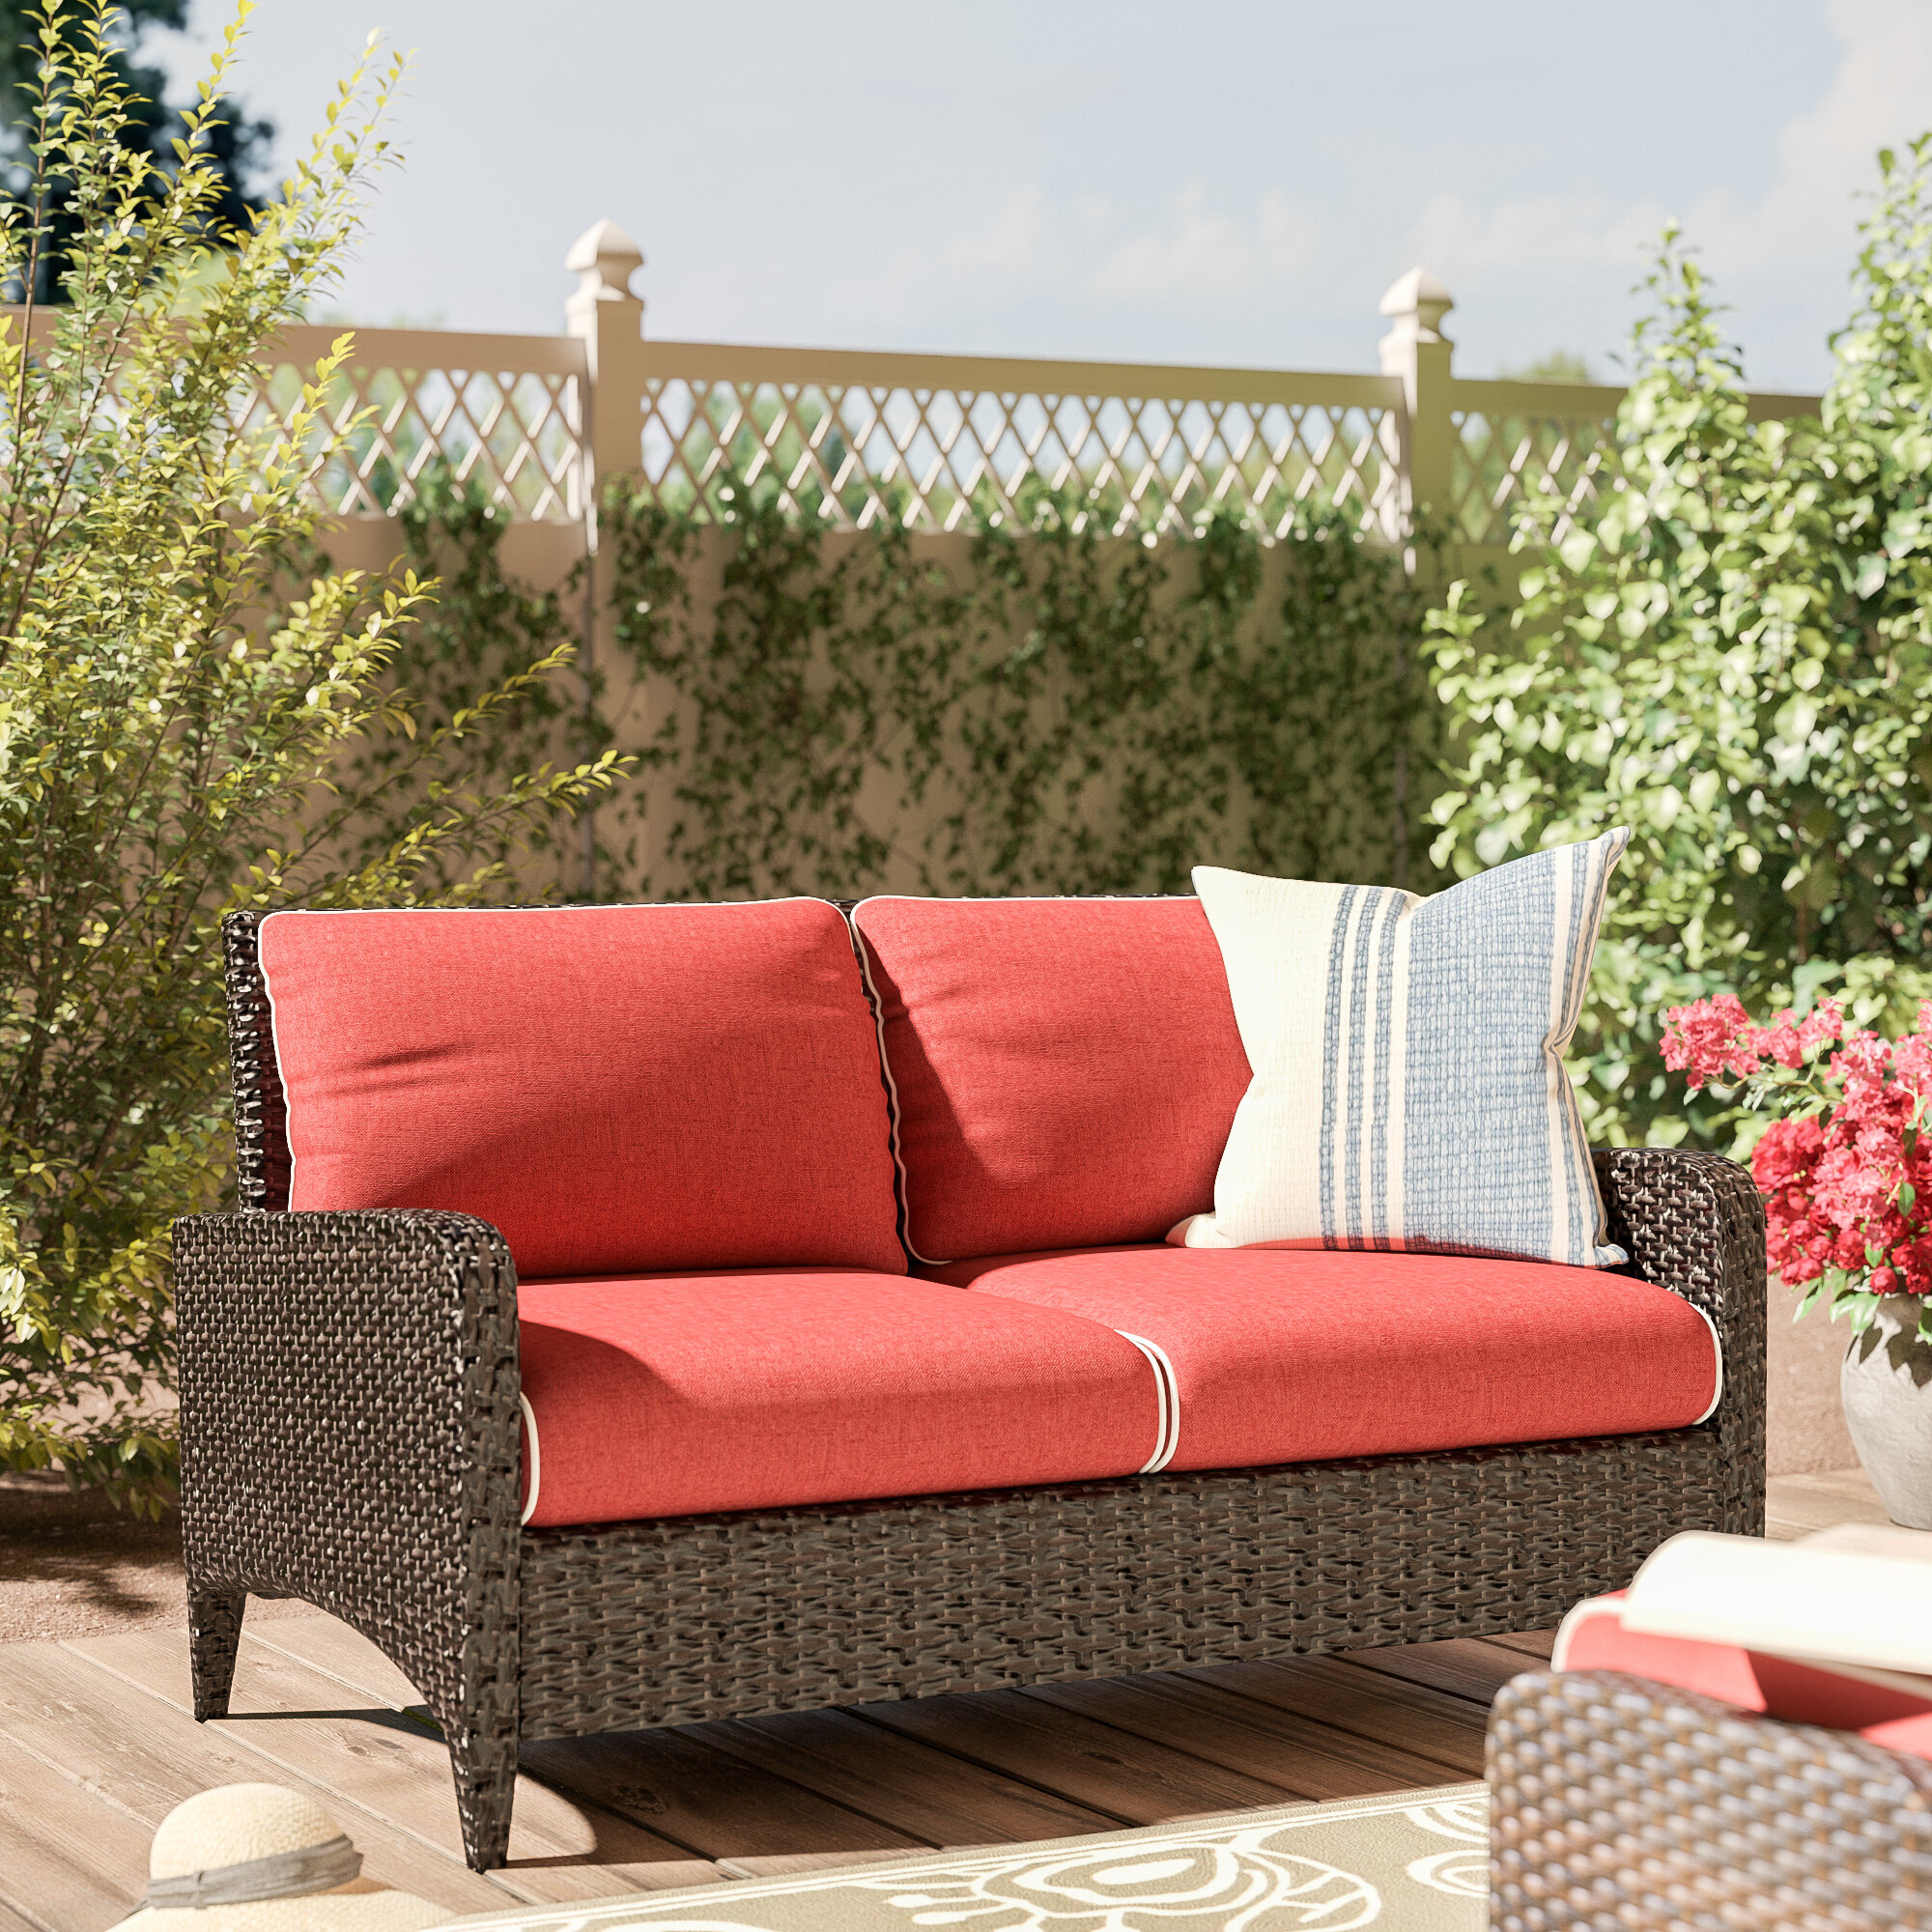 Outstanding World Menagerie Mosca Patio Loveseat With Cushions Reviews Uwap Interior Chair Design Uwaporg